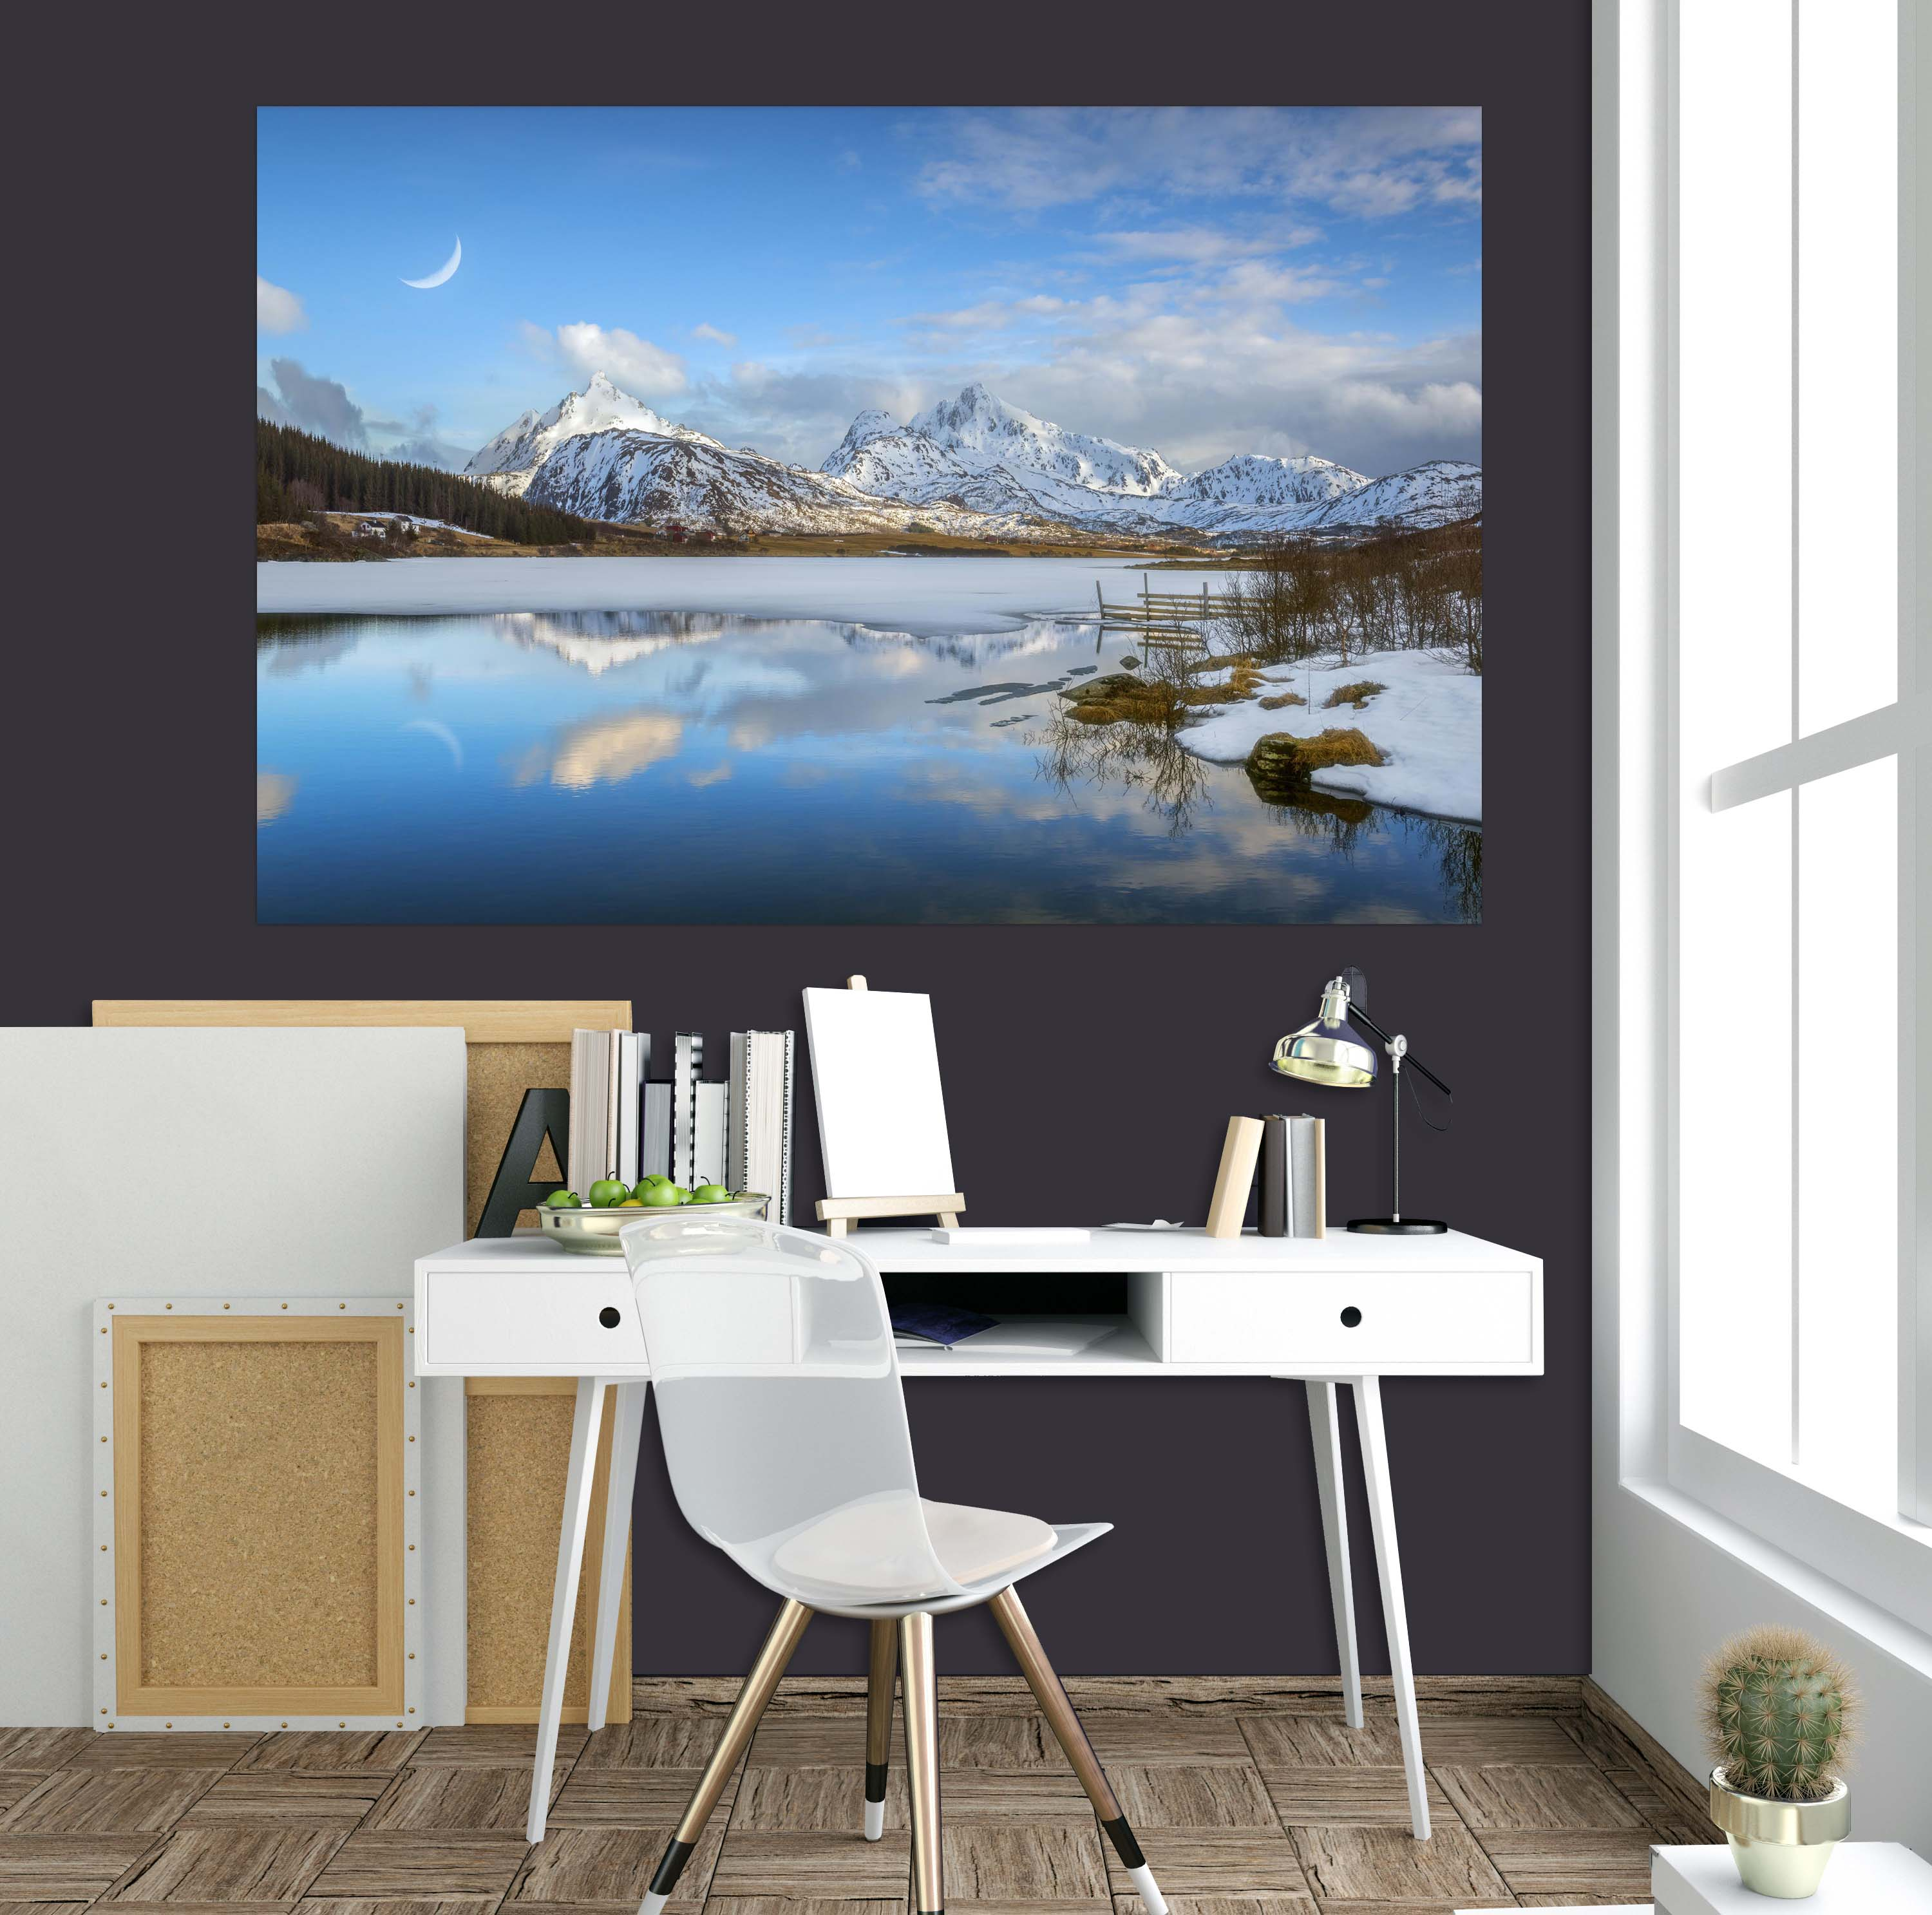 3D Crystal Clear Water 182 Marco Carmassi Wall Sticker